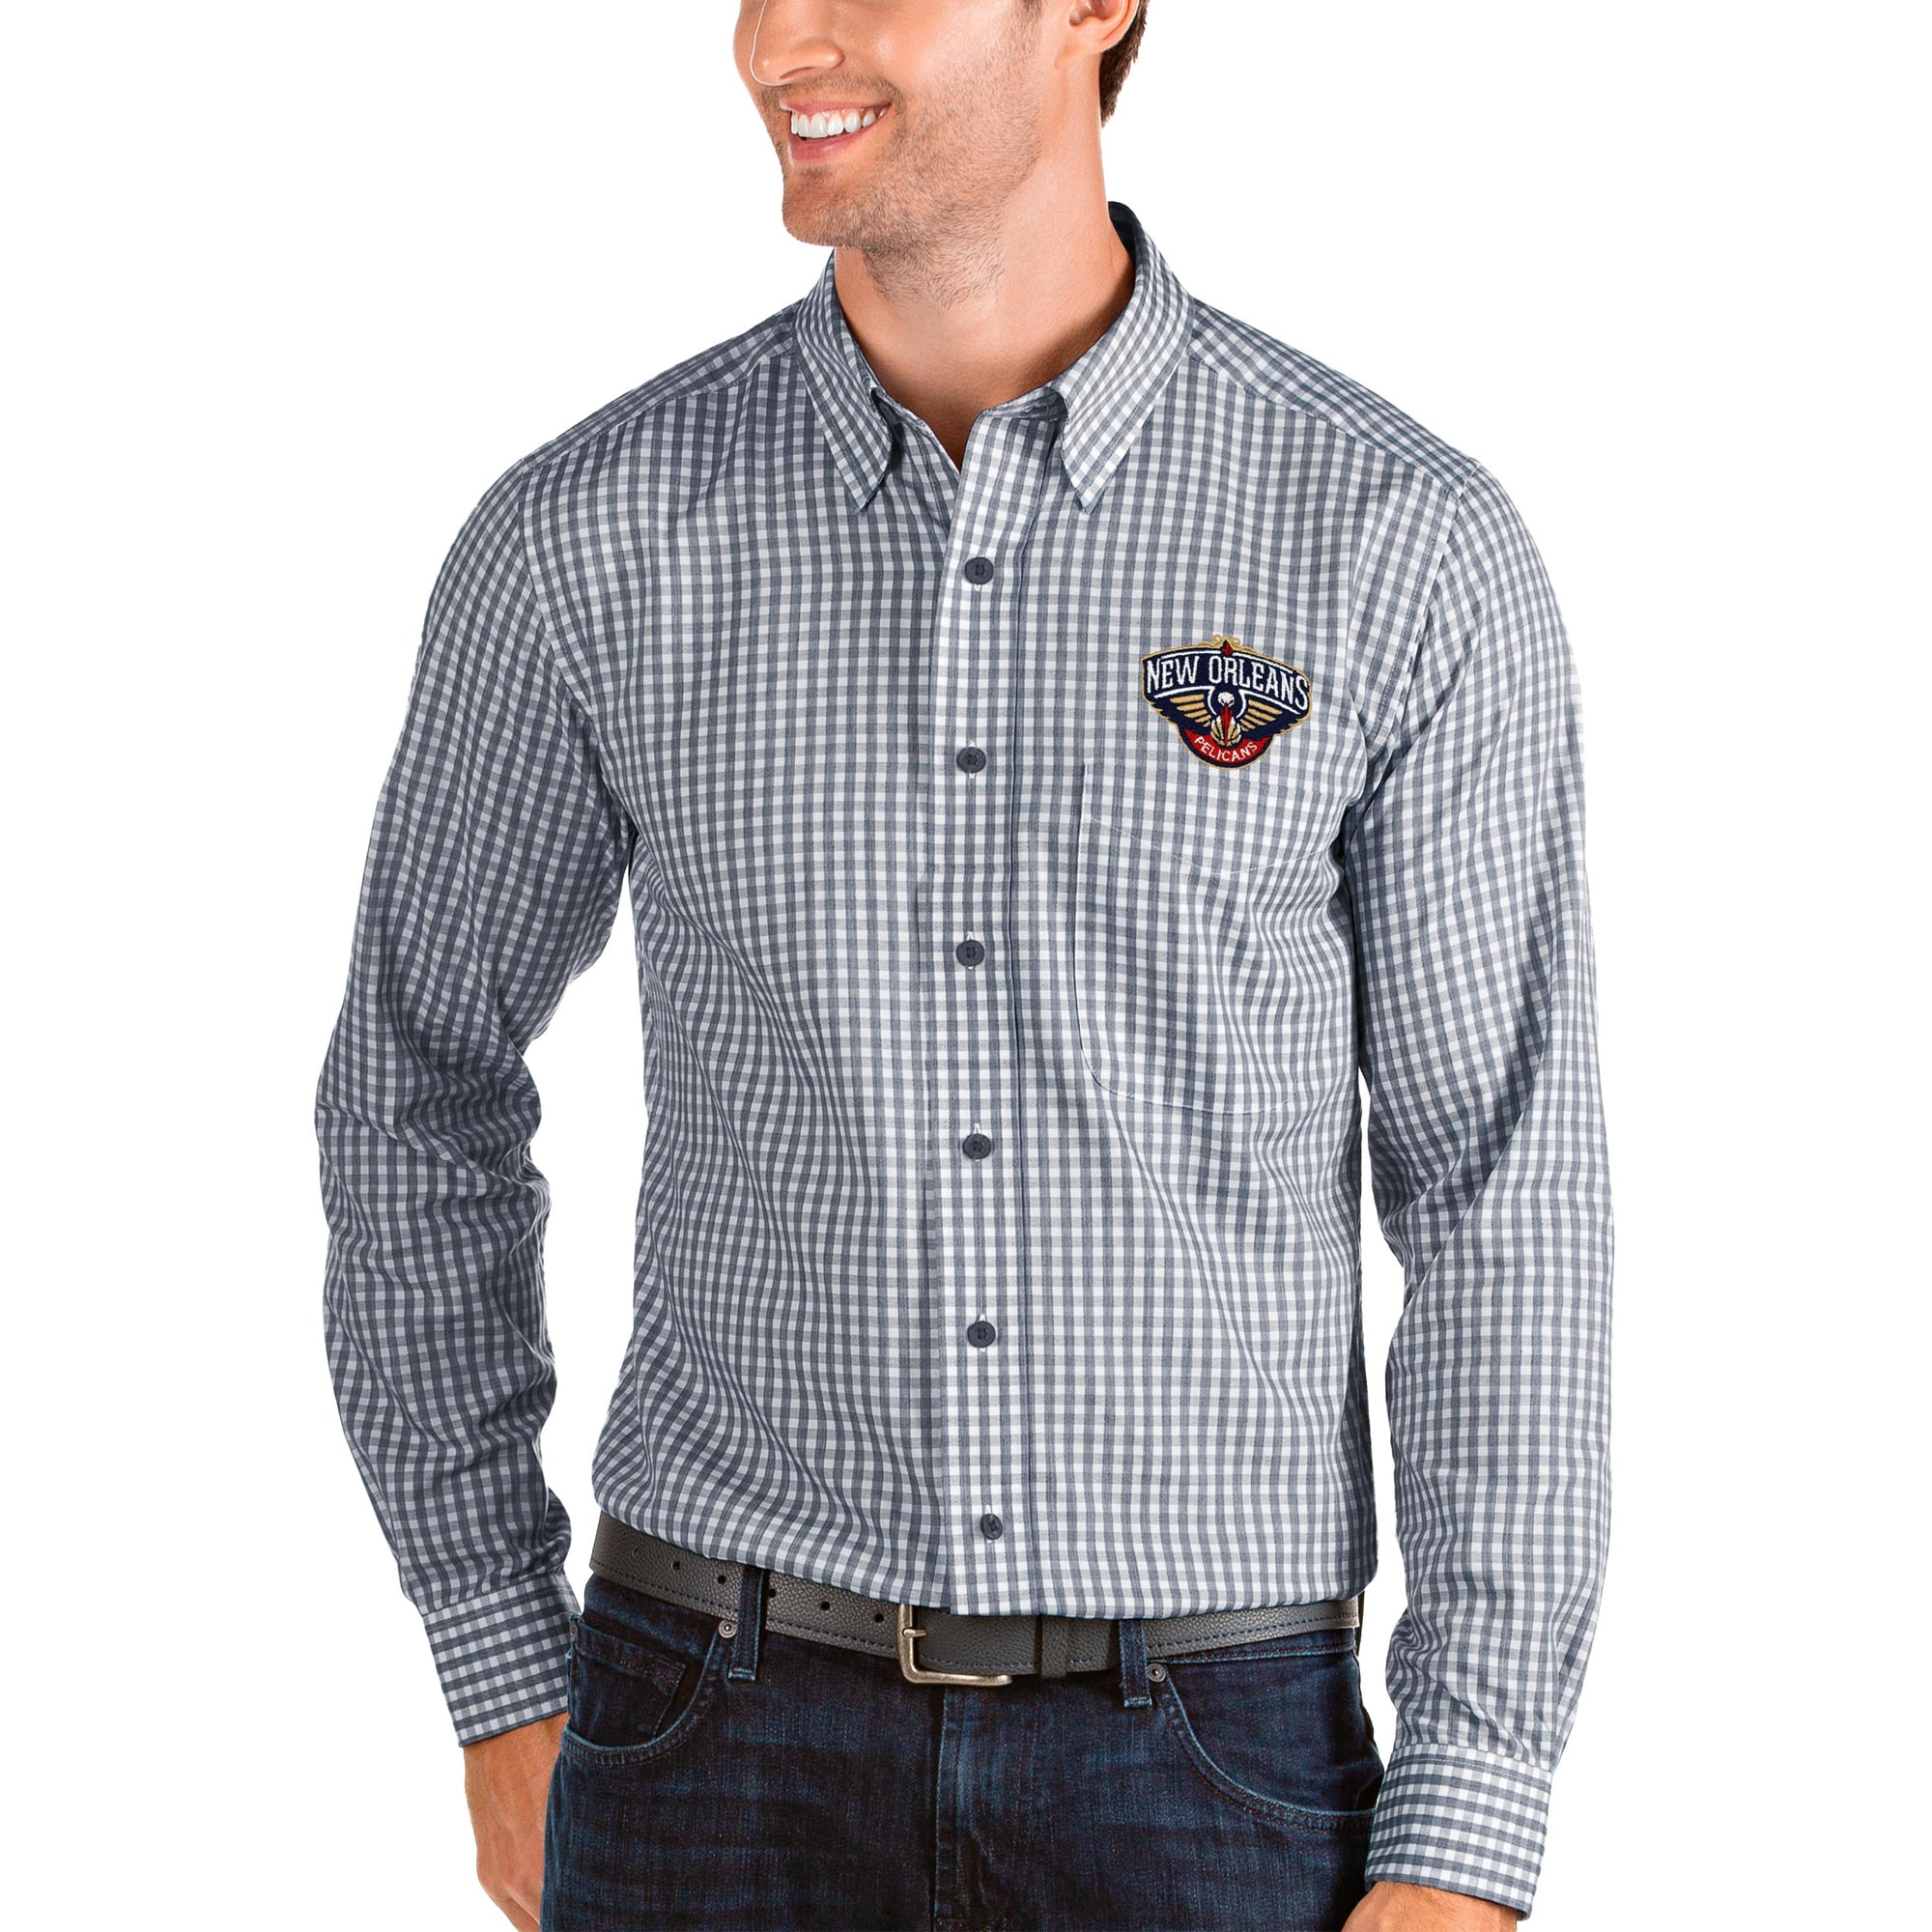 New Orleans Pelicans Antigua Structure Long Sleeve Button-Up Shirt - Navy/White